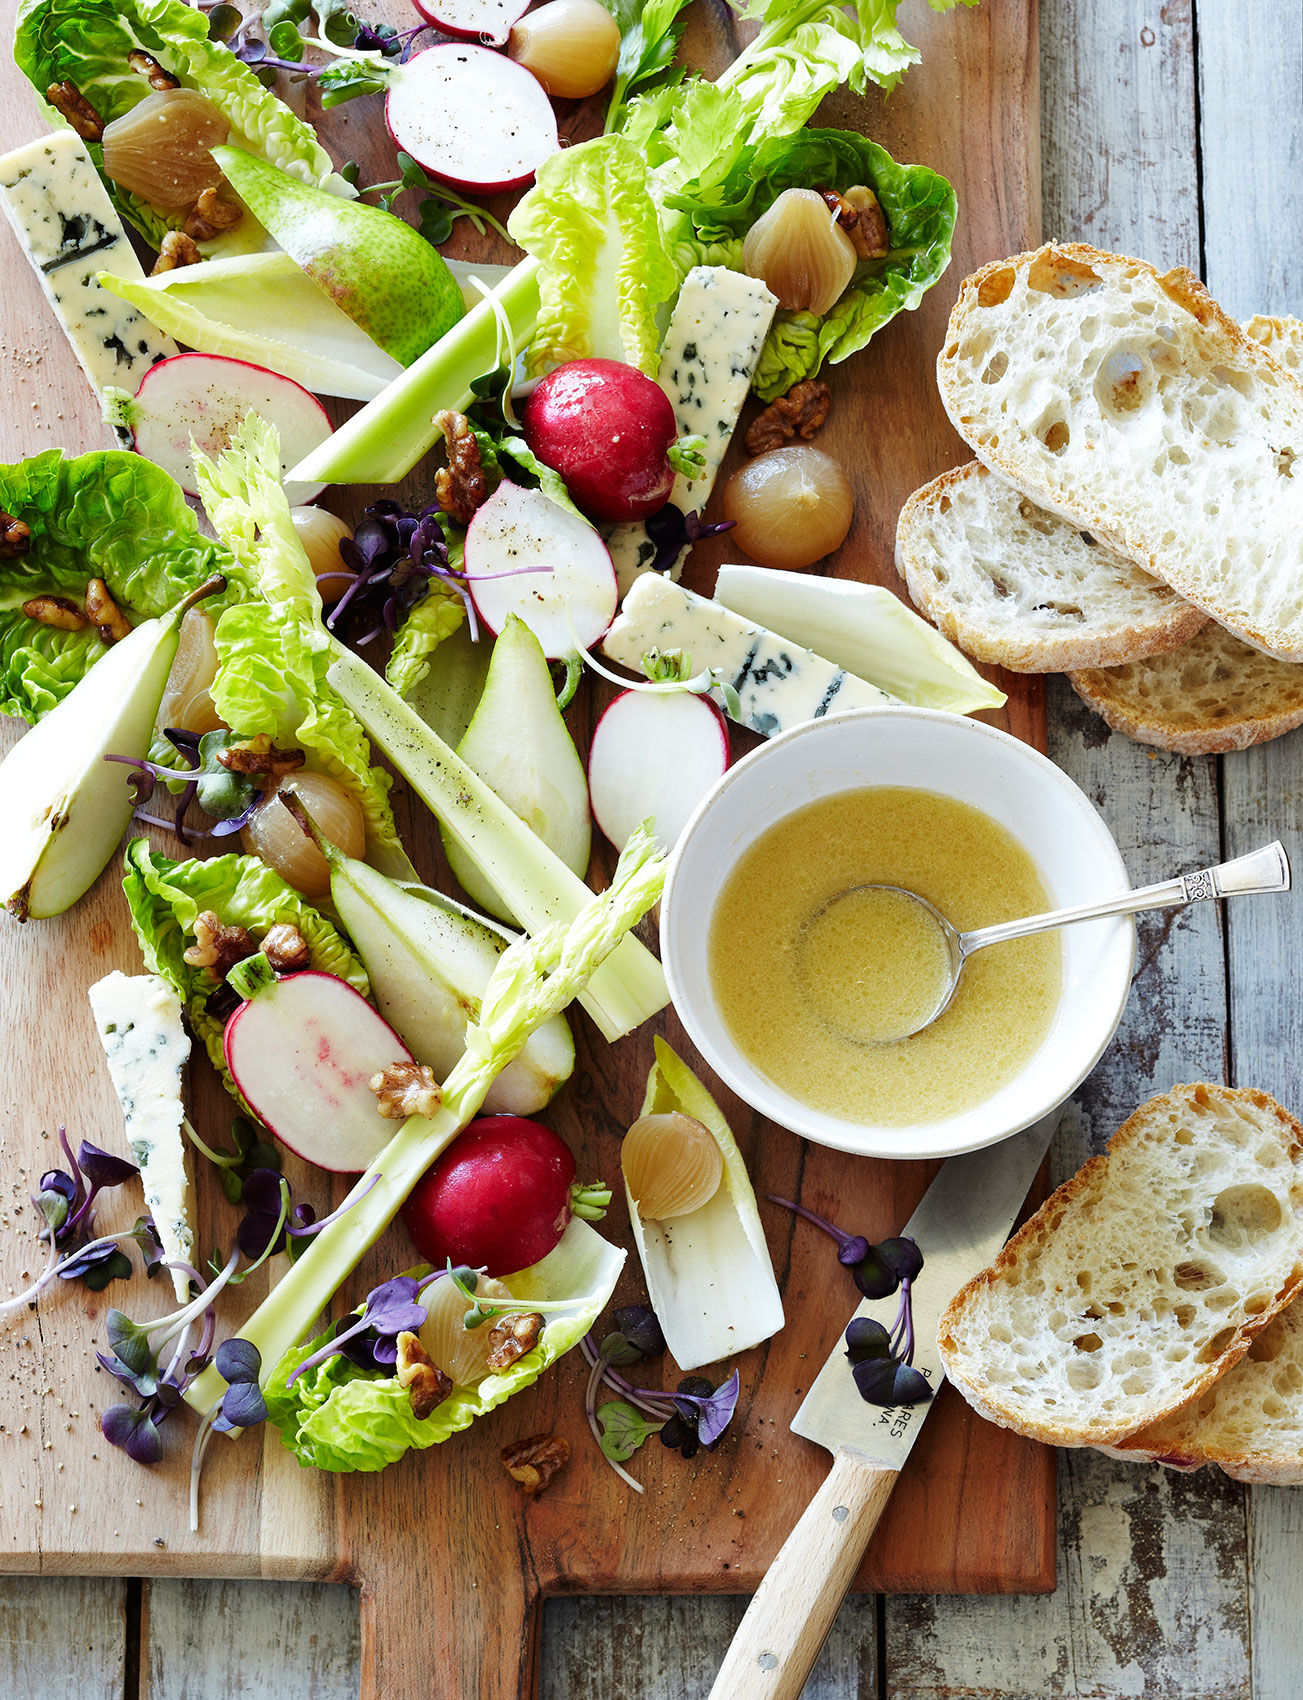 Penguin_Salads_Leaves_Ploughmans_03